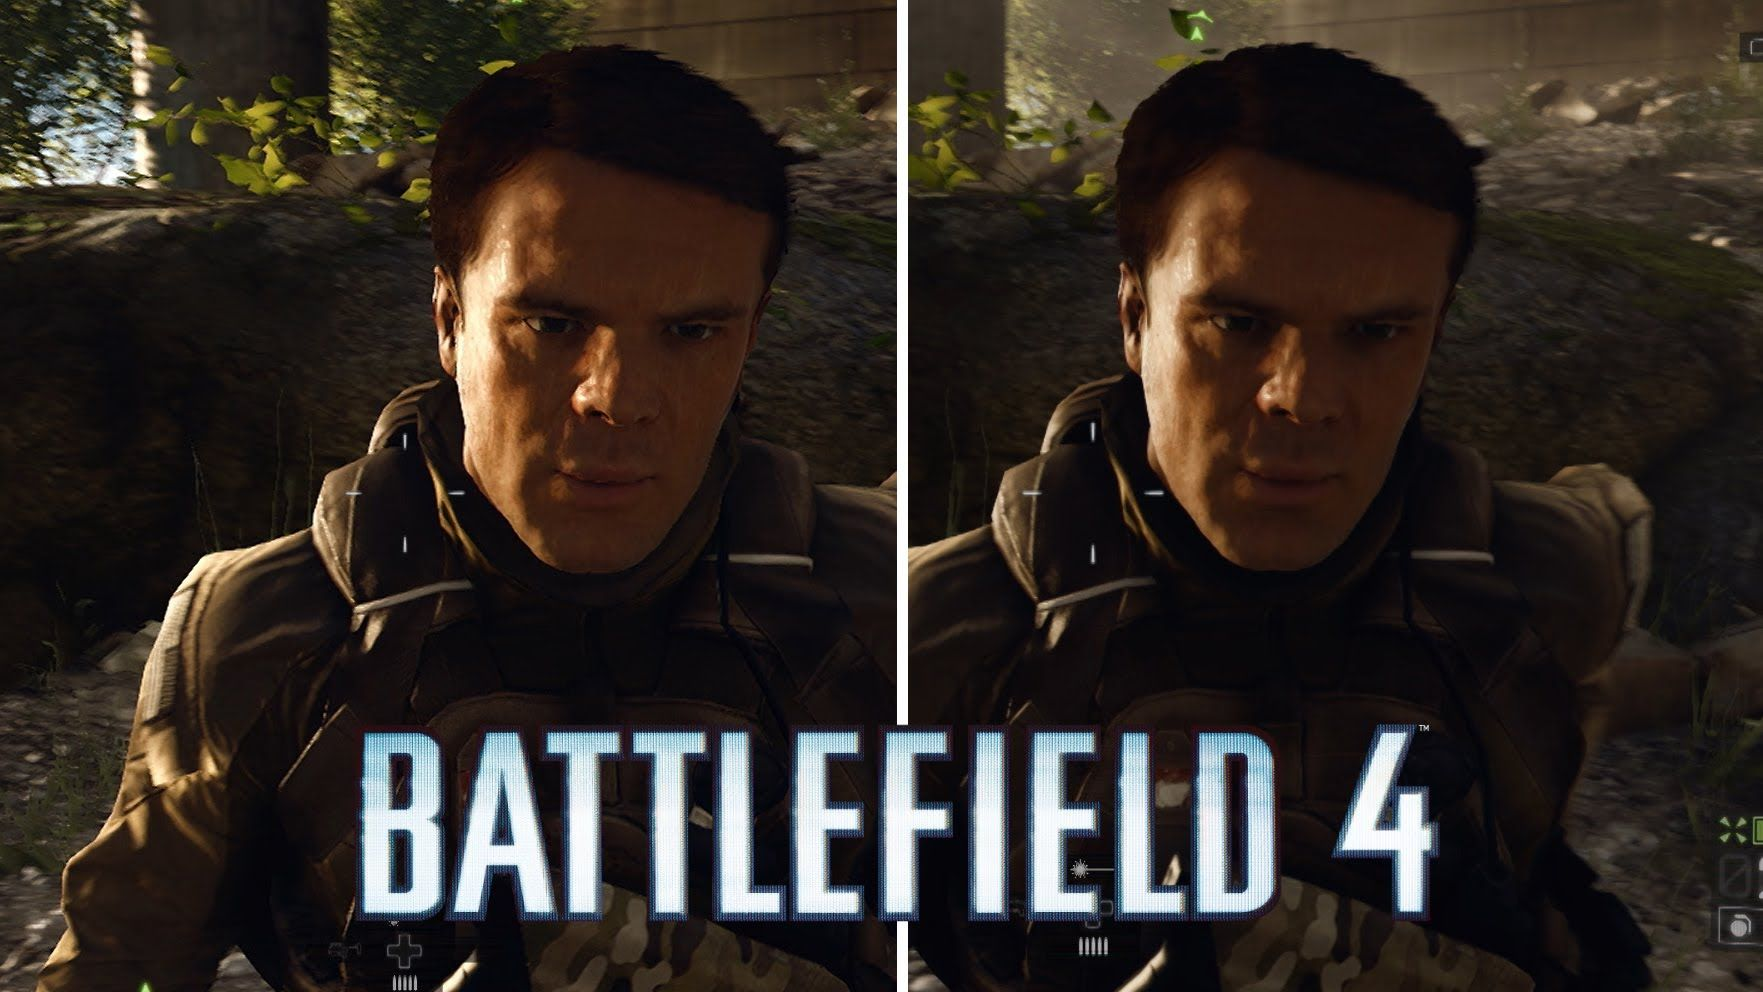 Battlefield 4 Xbox One Ps4 Graphics Comparison With Images